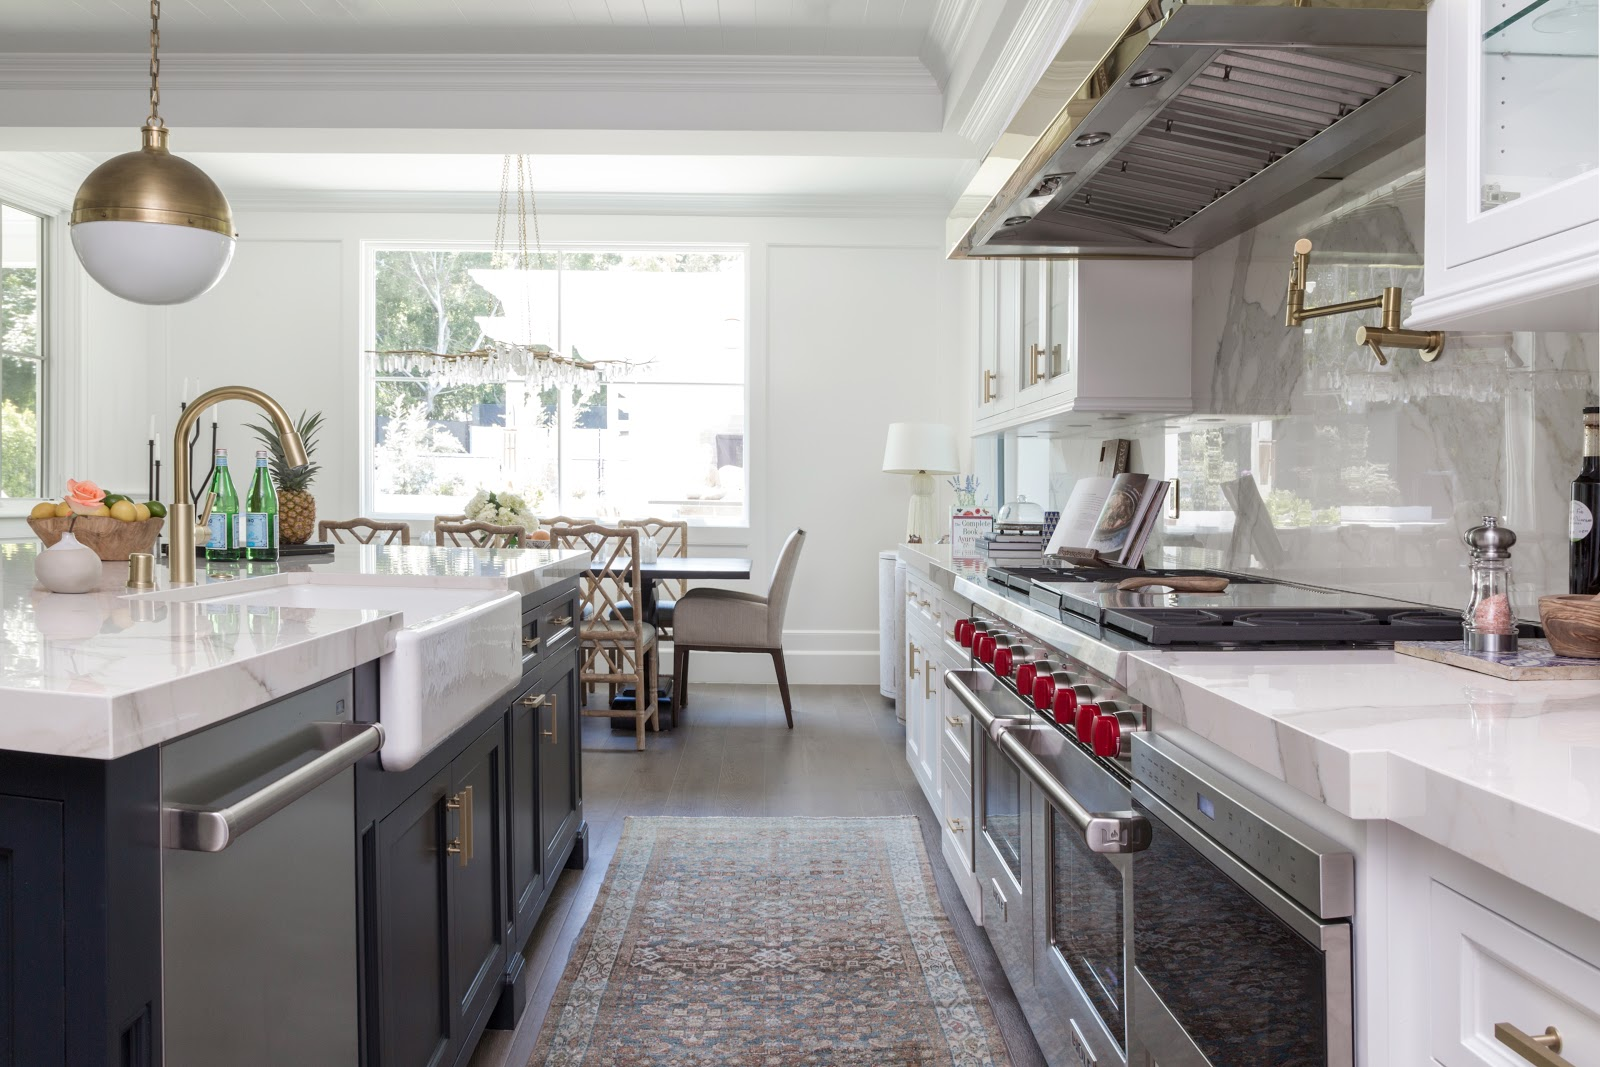 California inspired breezy kitchen with masculine cabinetry - Dbh-biz.info Interior Design